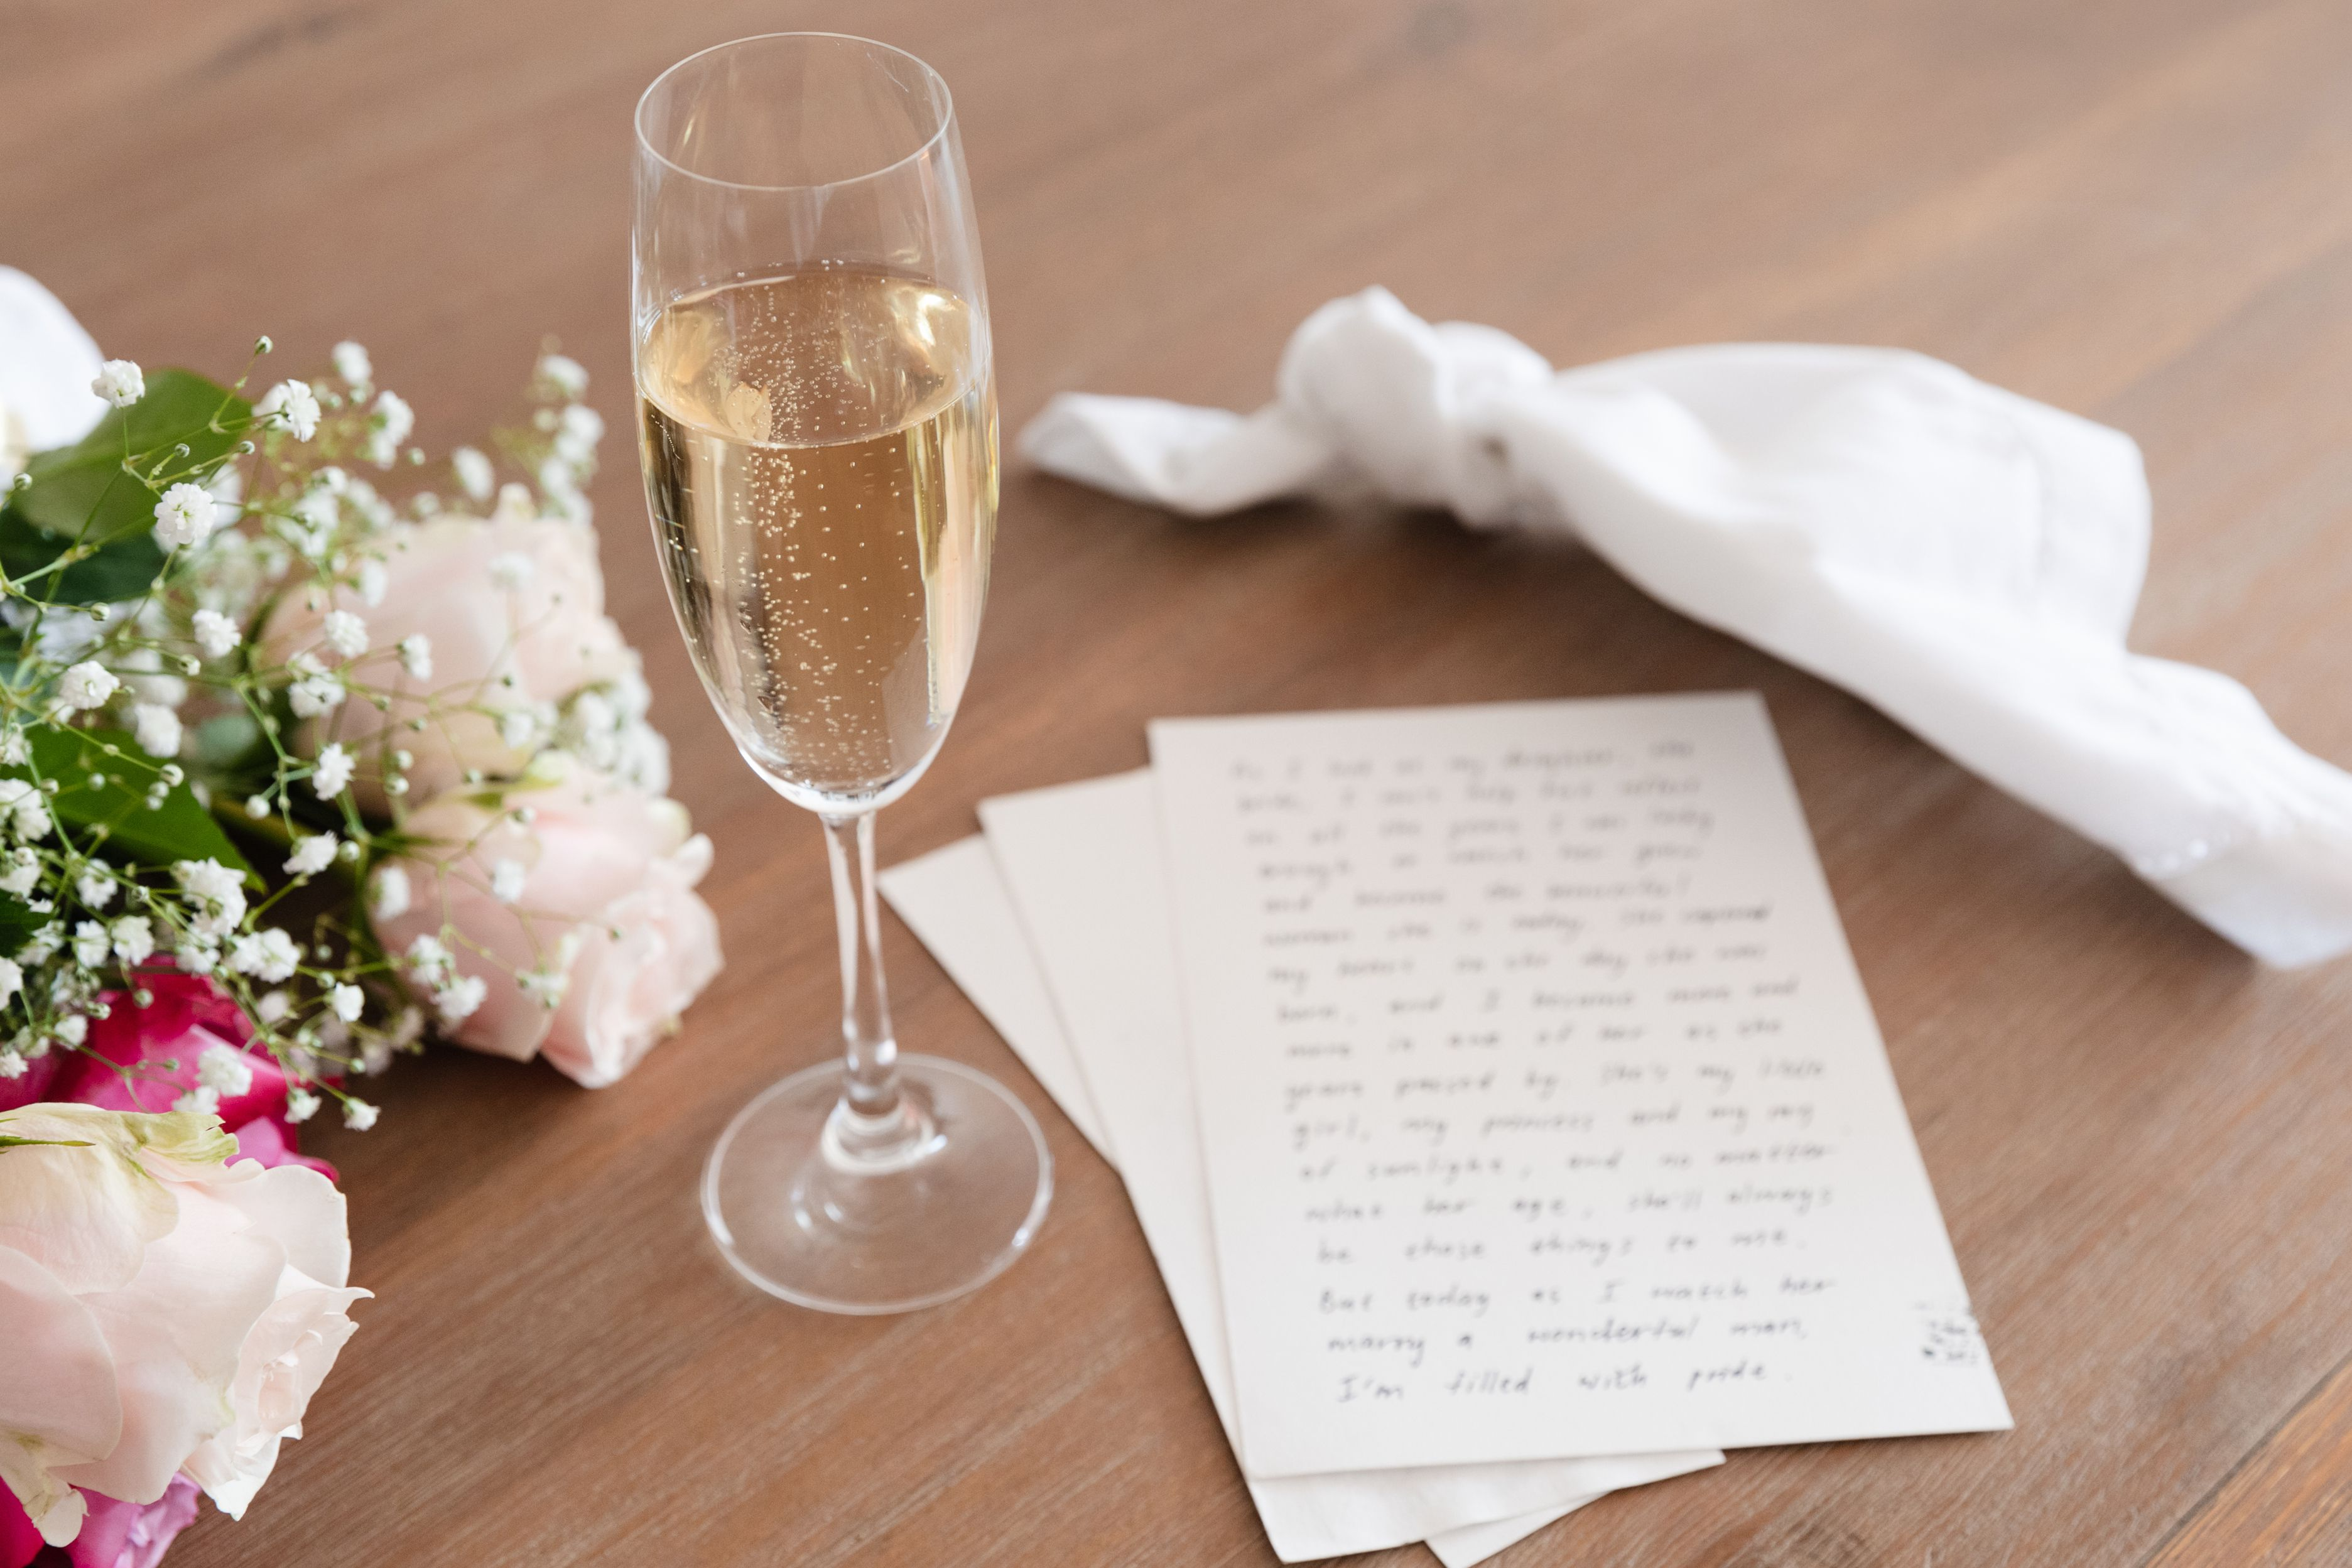 All Time Favorite Wedding Toasts For The Father Of The Bride To Use